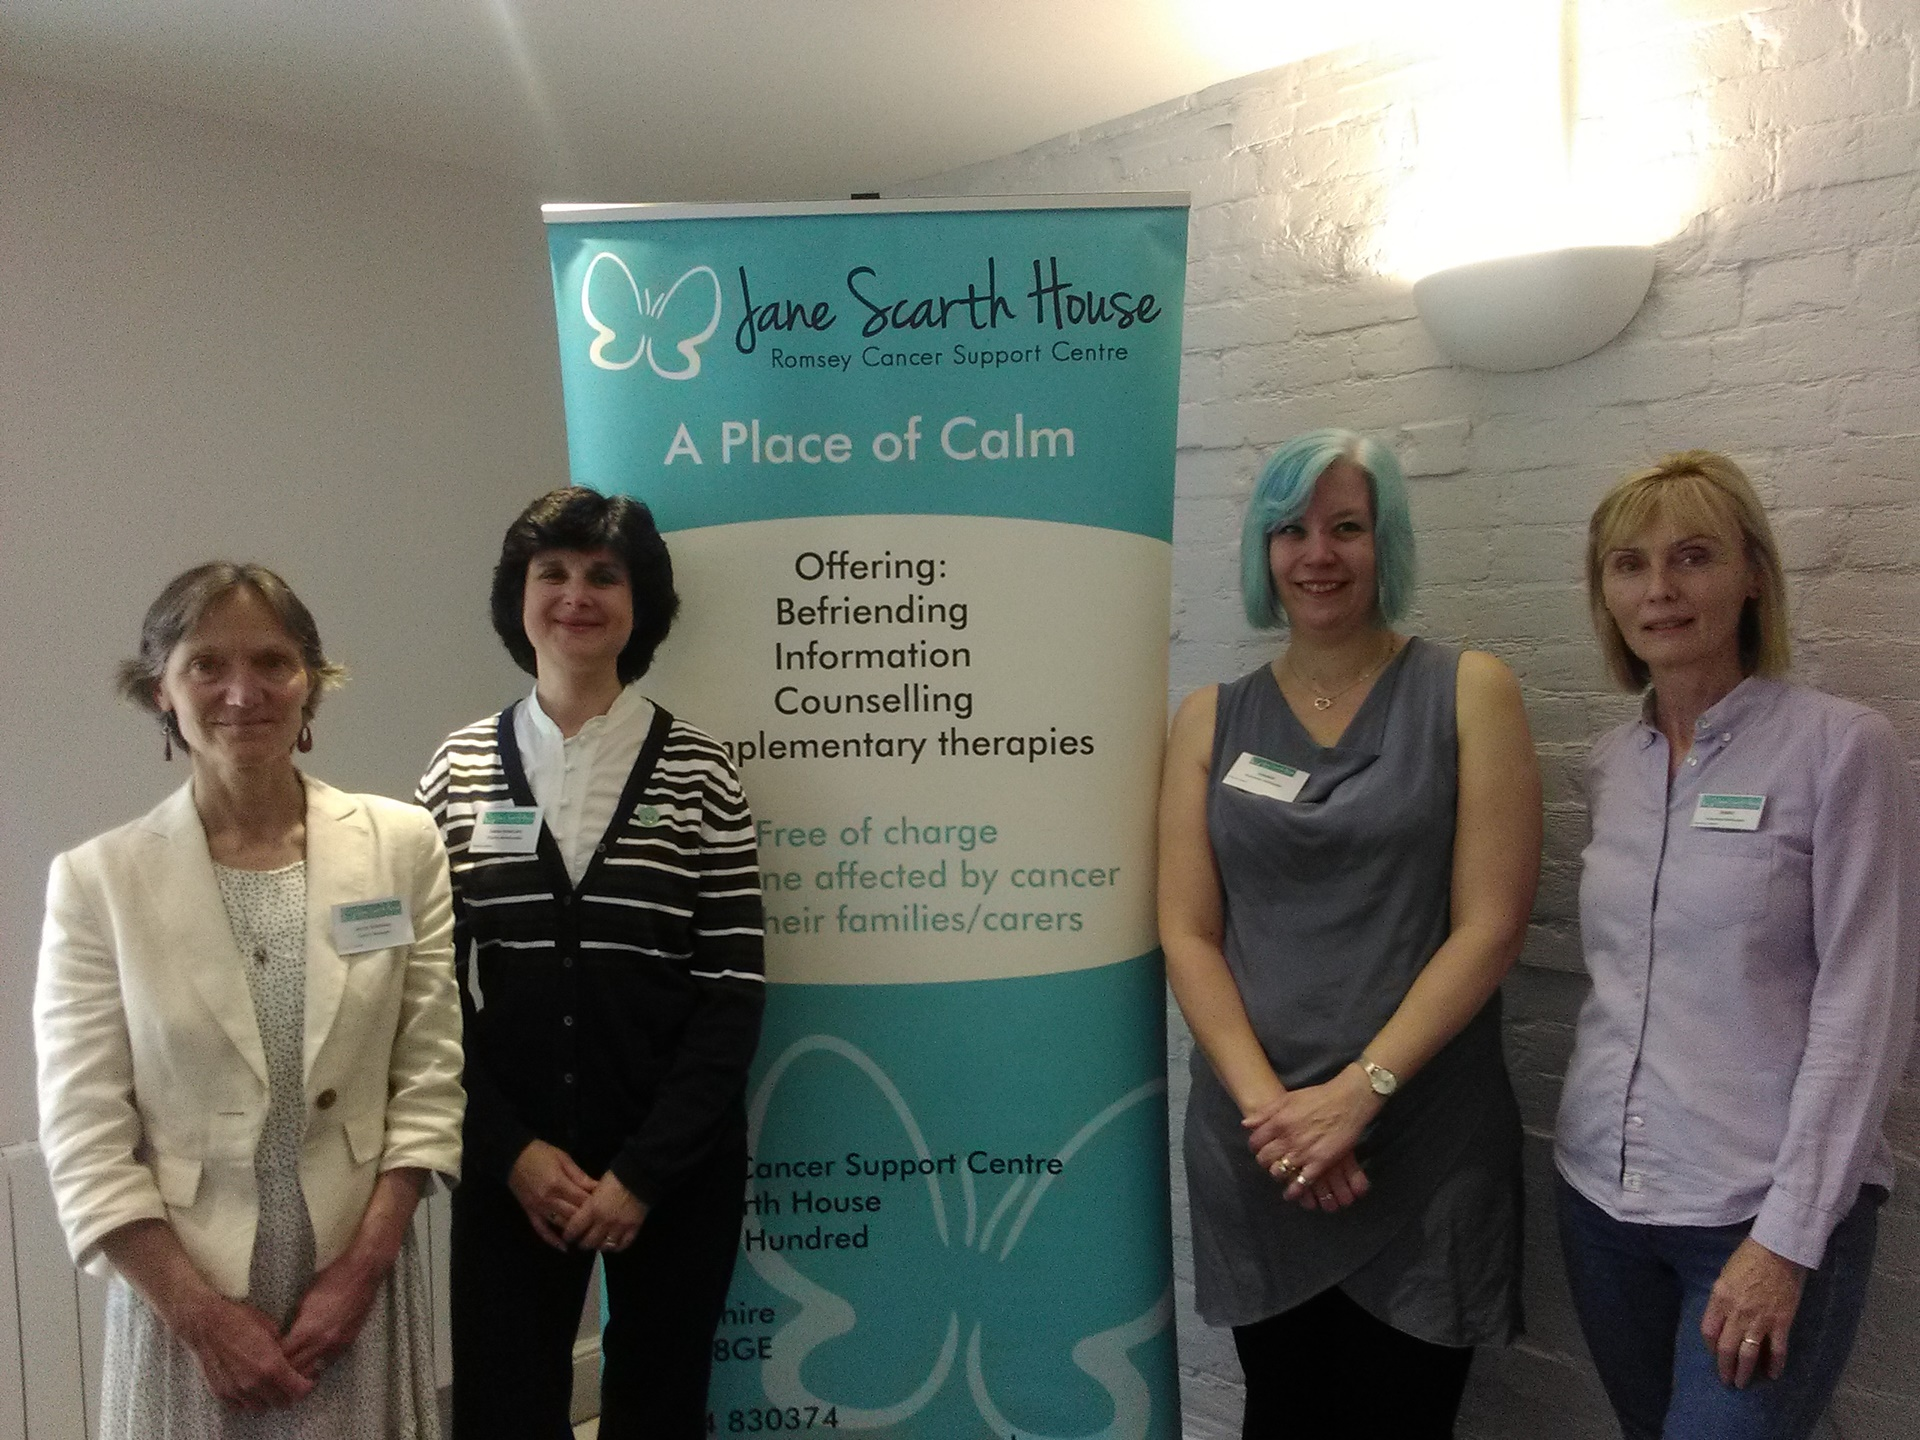 The Team at Jane Scarth House